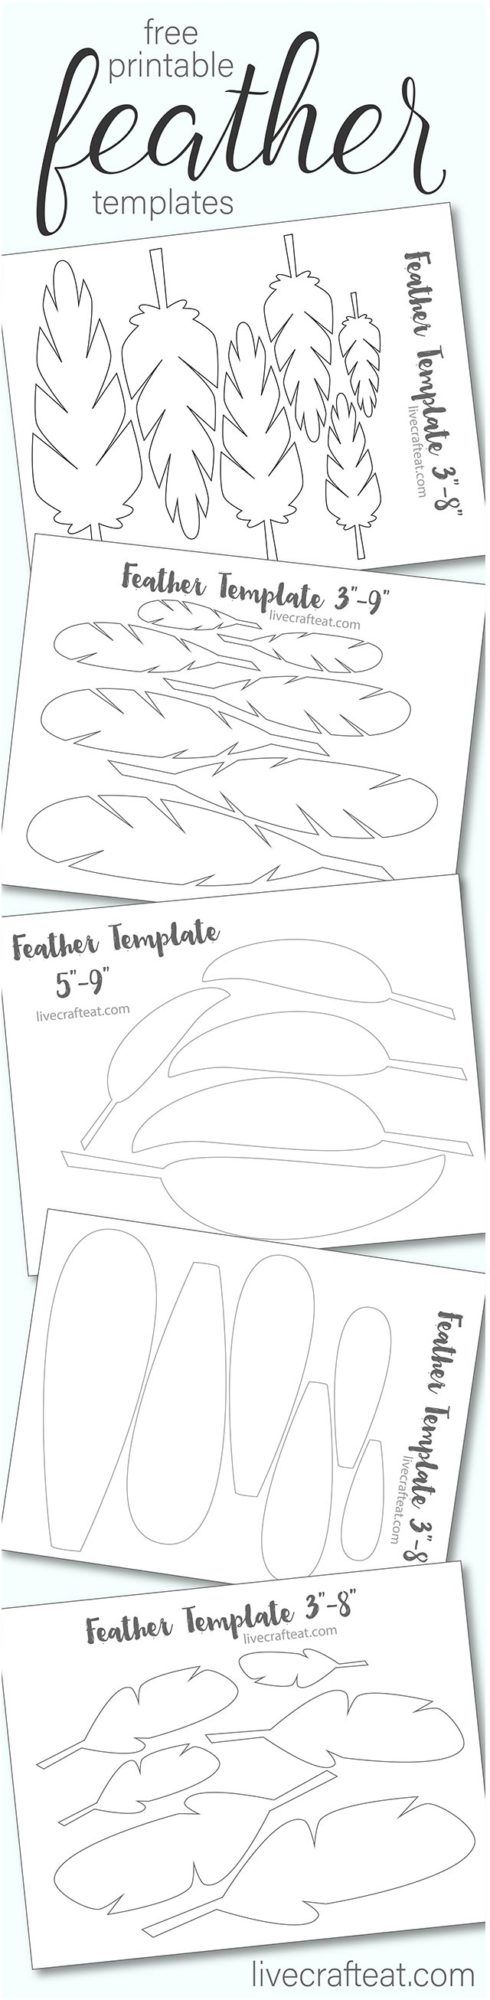 picture about Free Printable Turkey Feather Template titled Printable Turkey Feather Styles Templates - Totally free